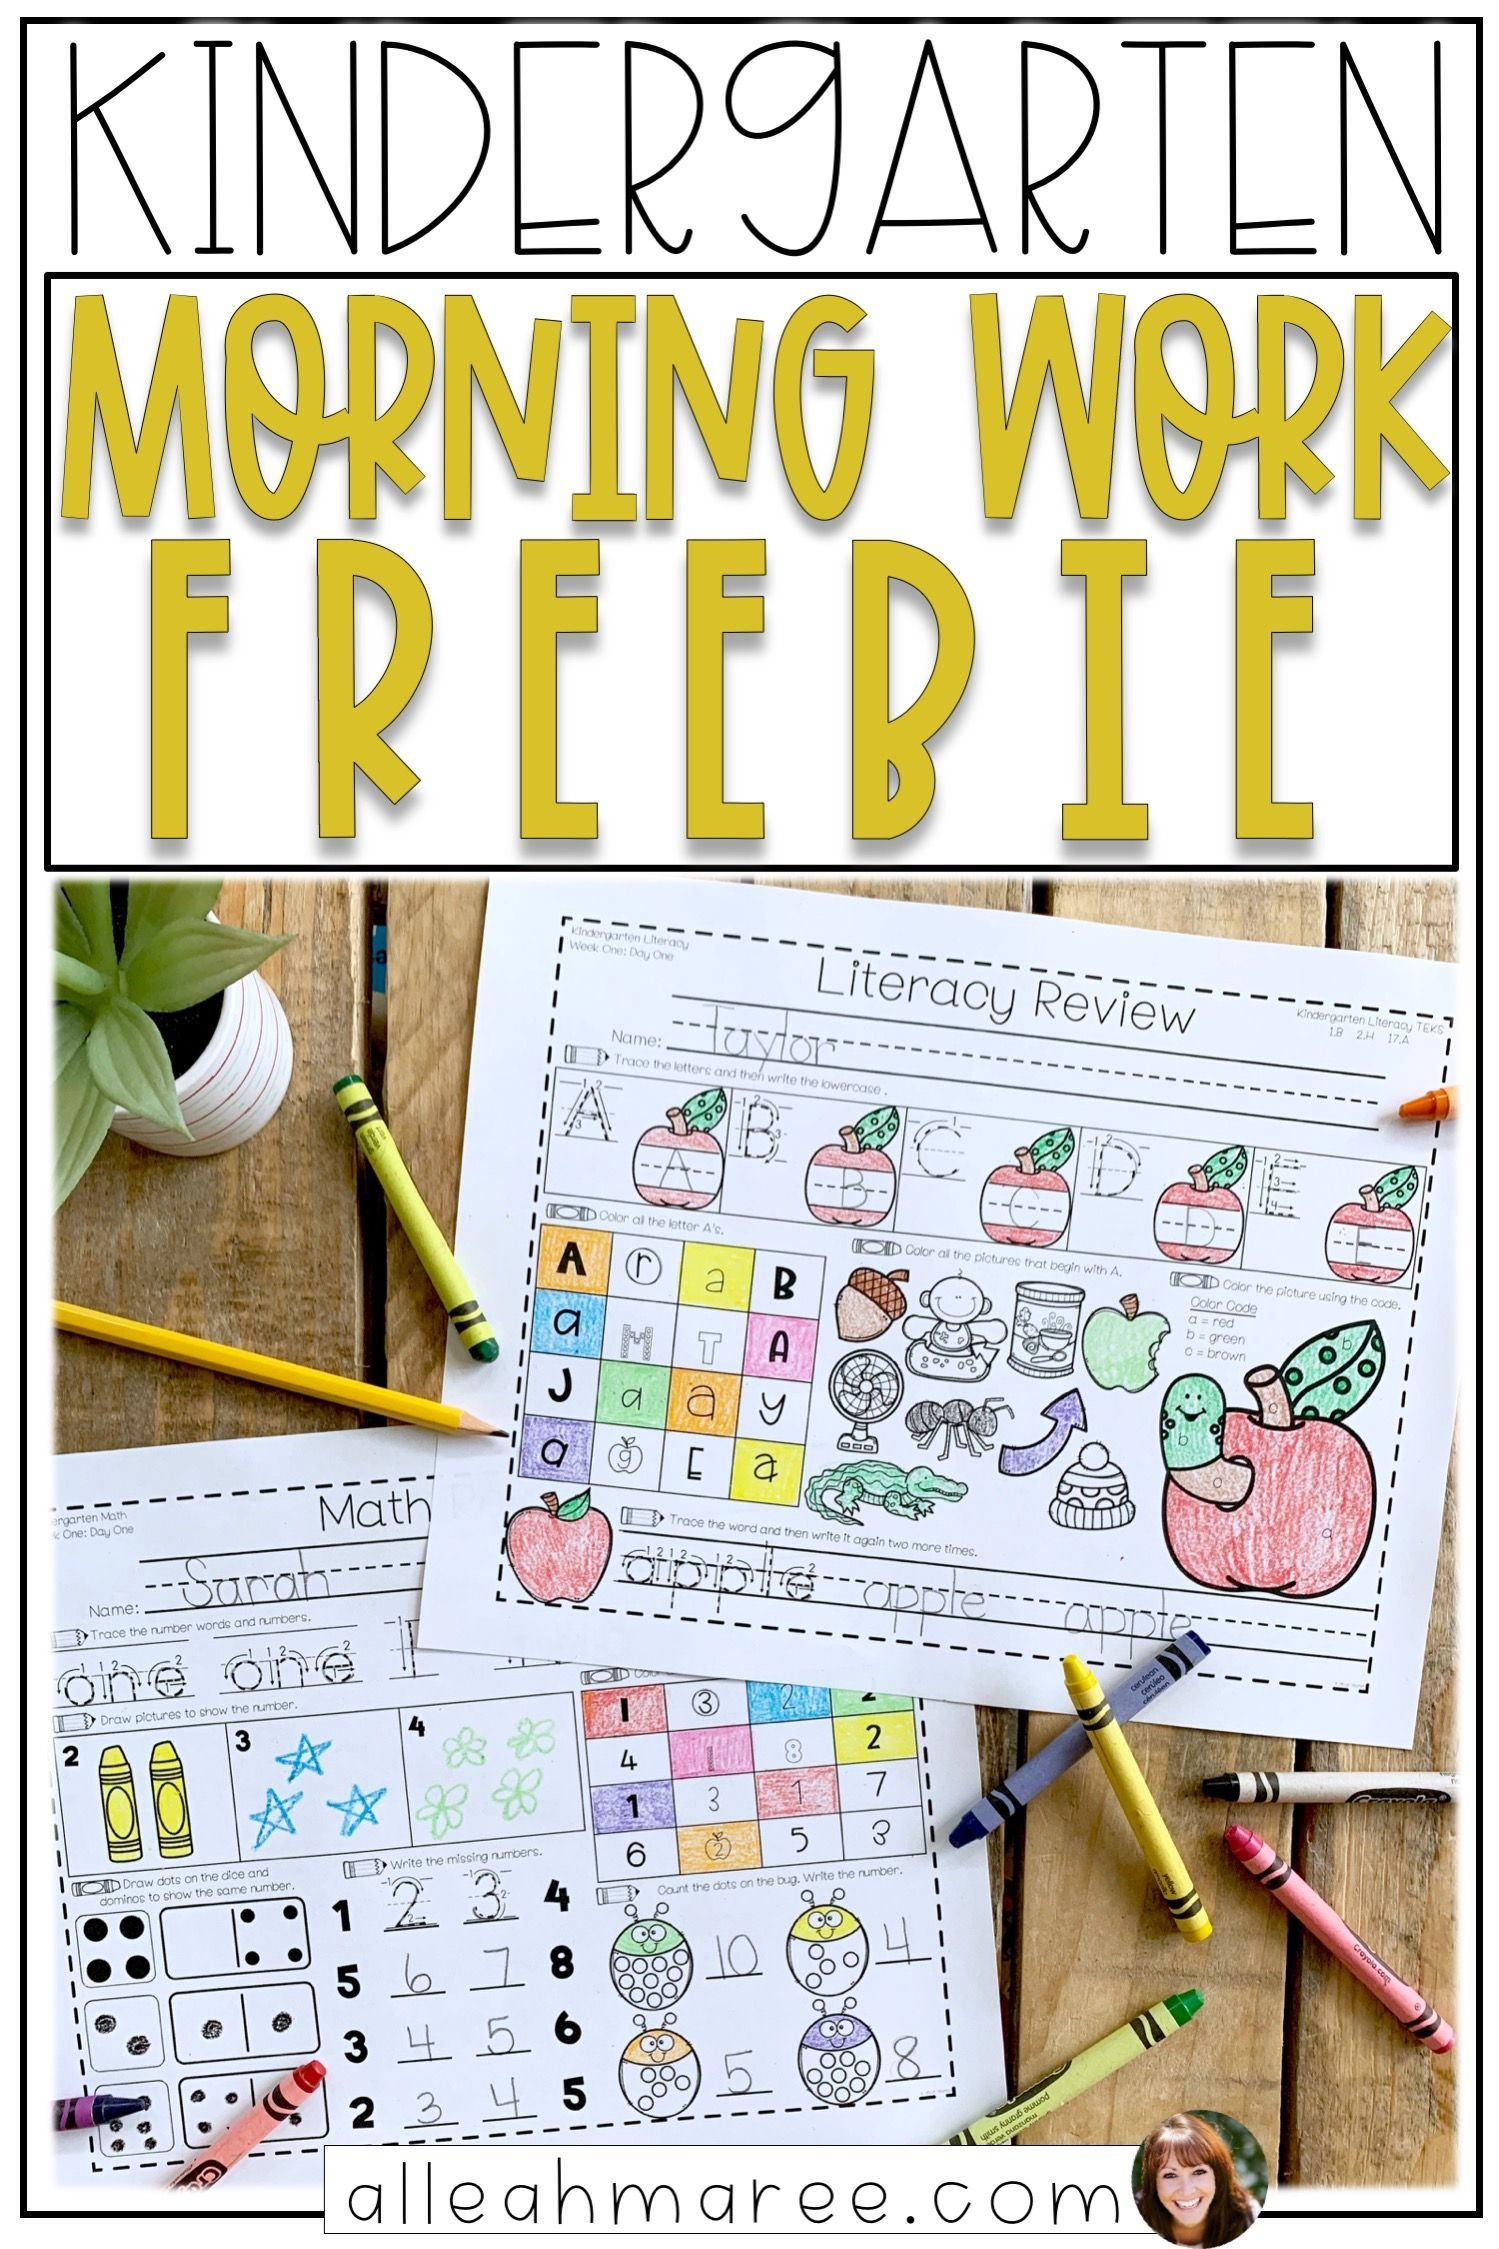 Daily Routine Worksheet Kindergarten